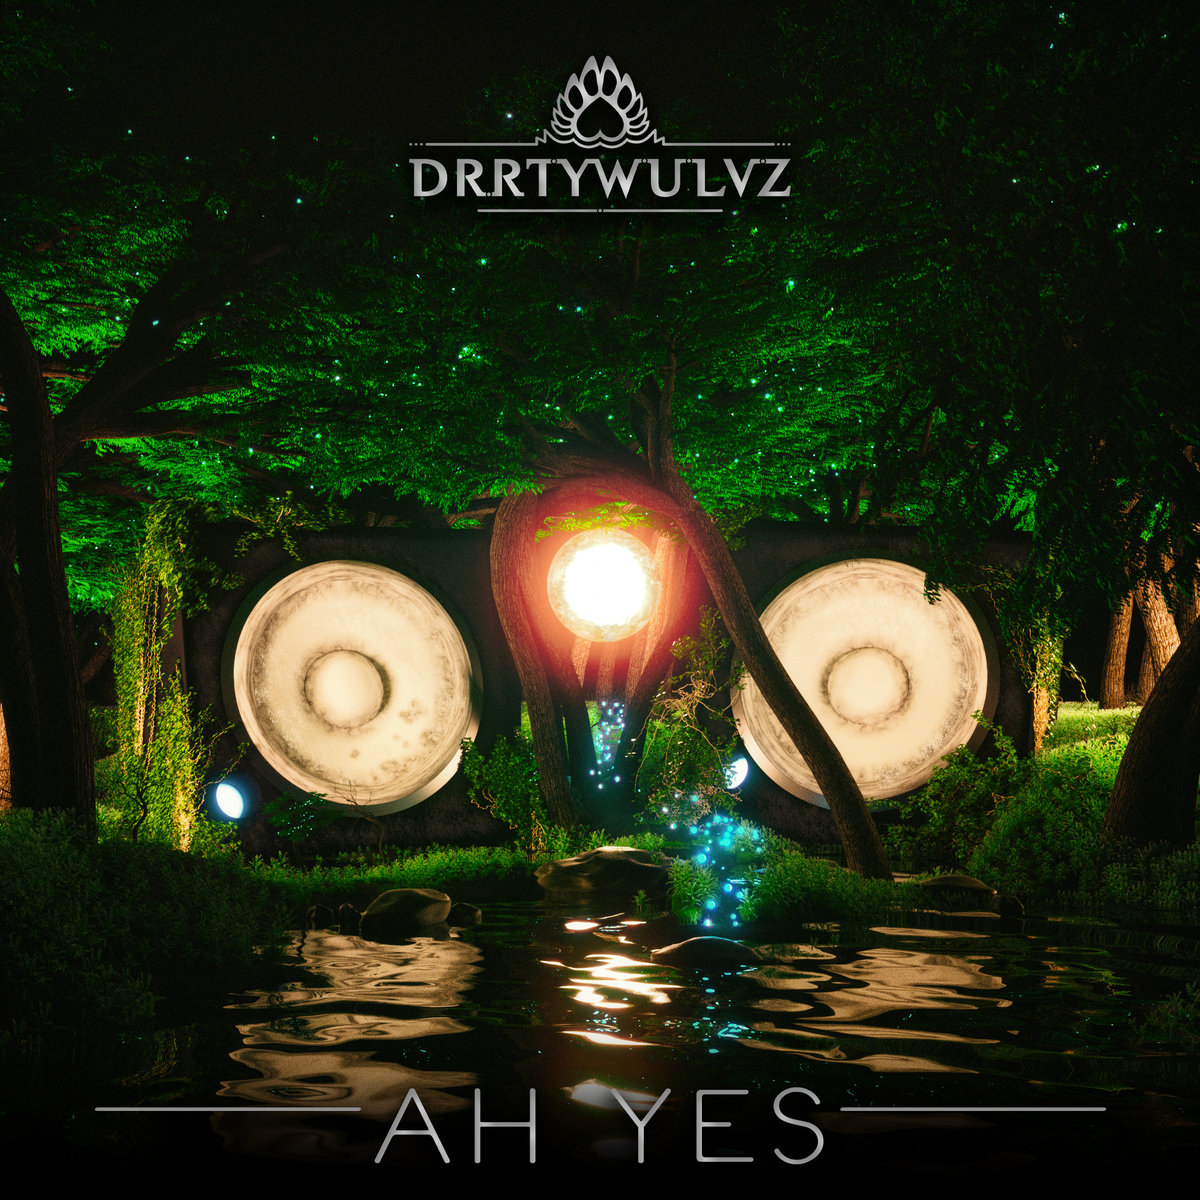 DRRTYWULVZ - Juice Beets @ 'Ah Yes' album (bass, drrtywulvz)